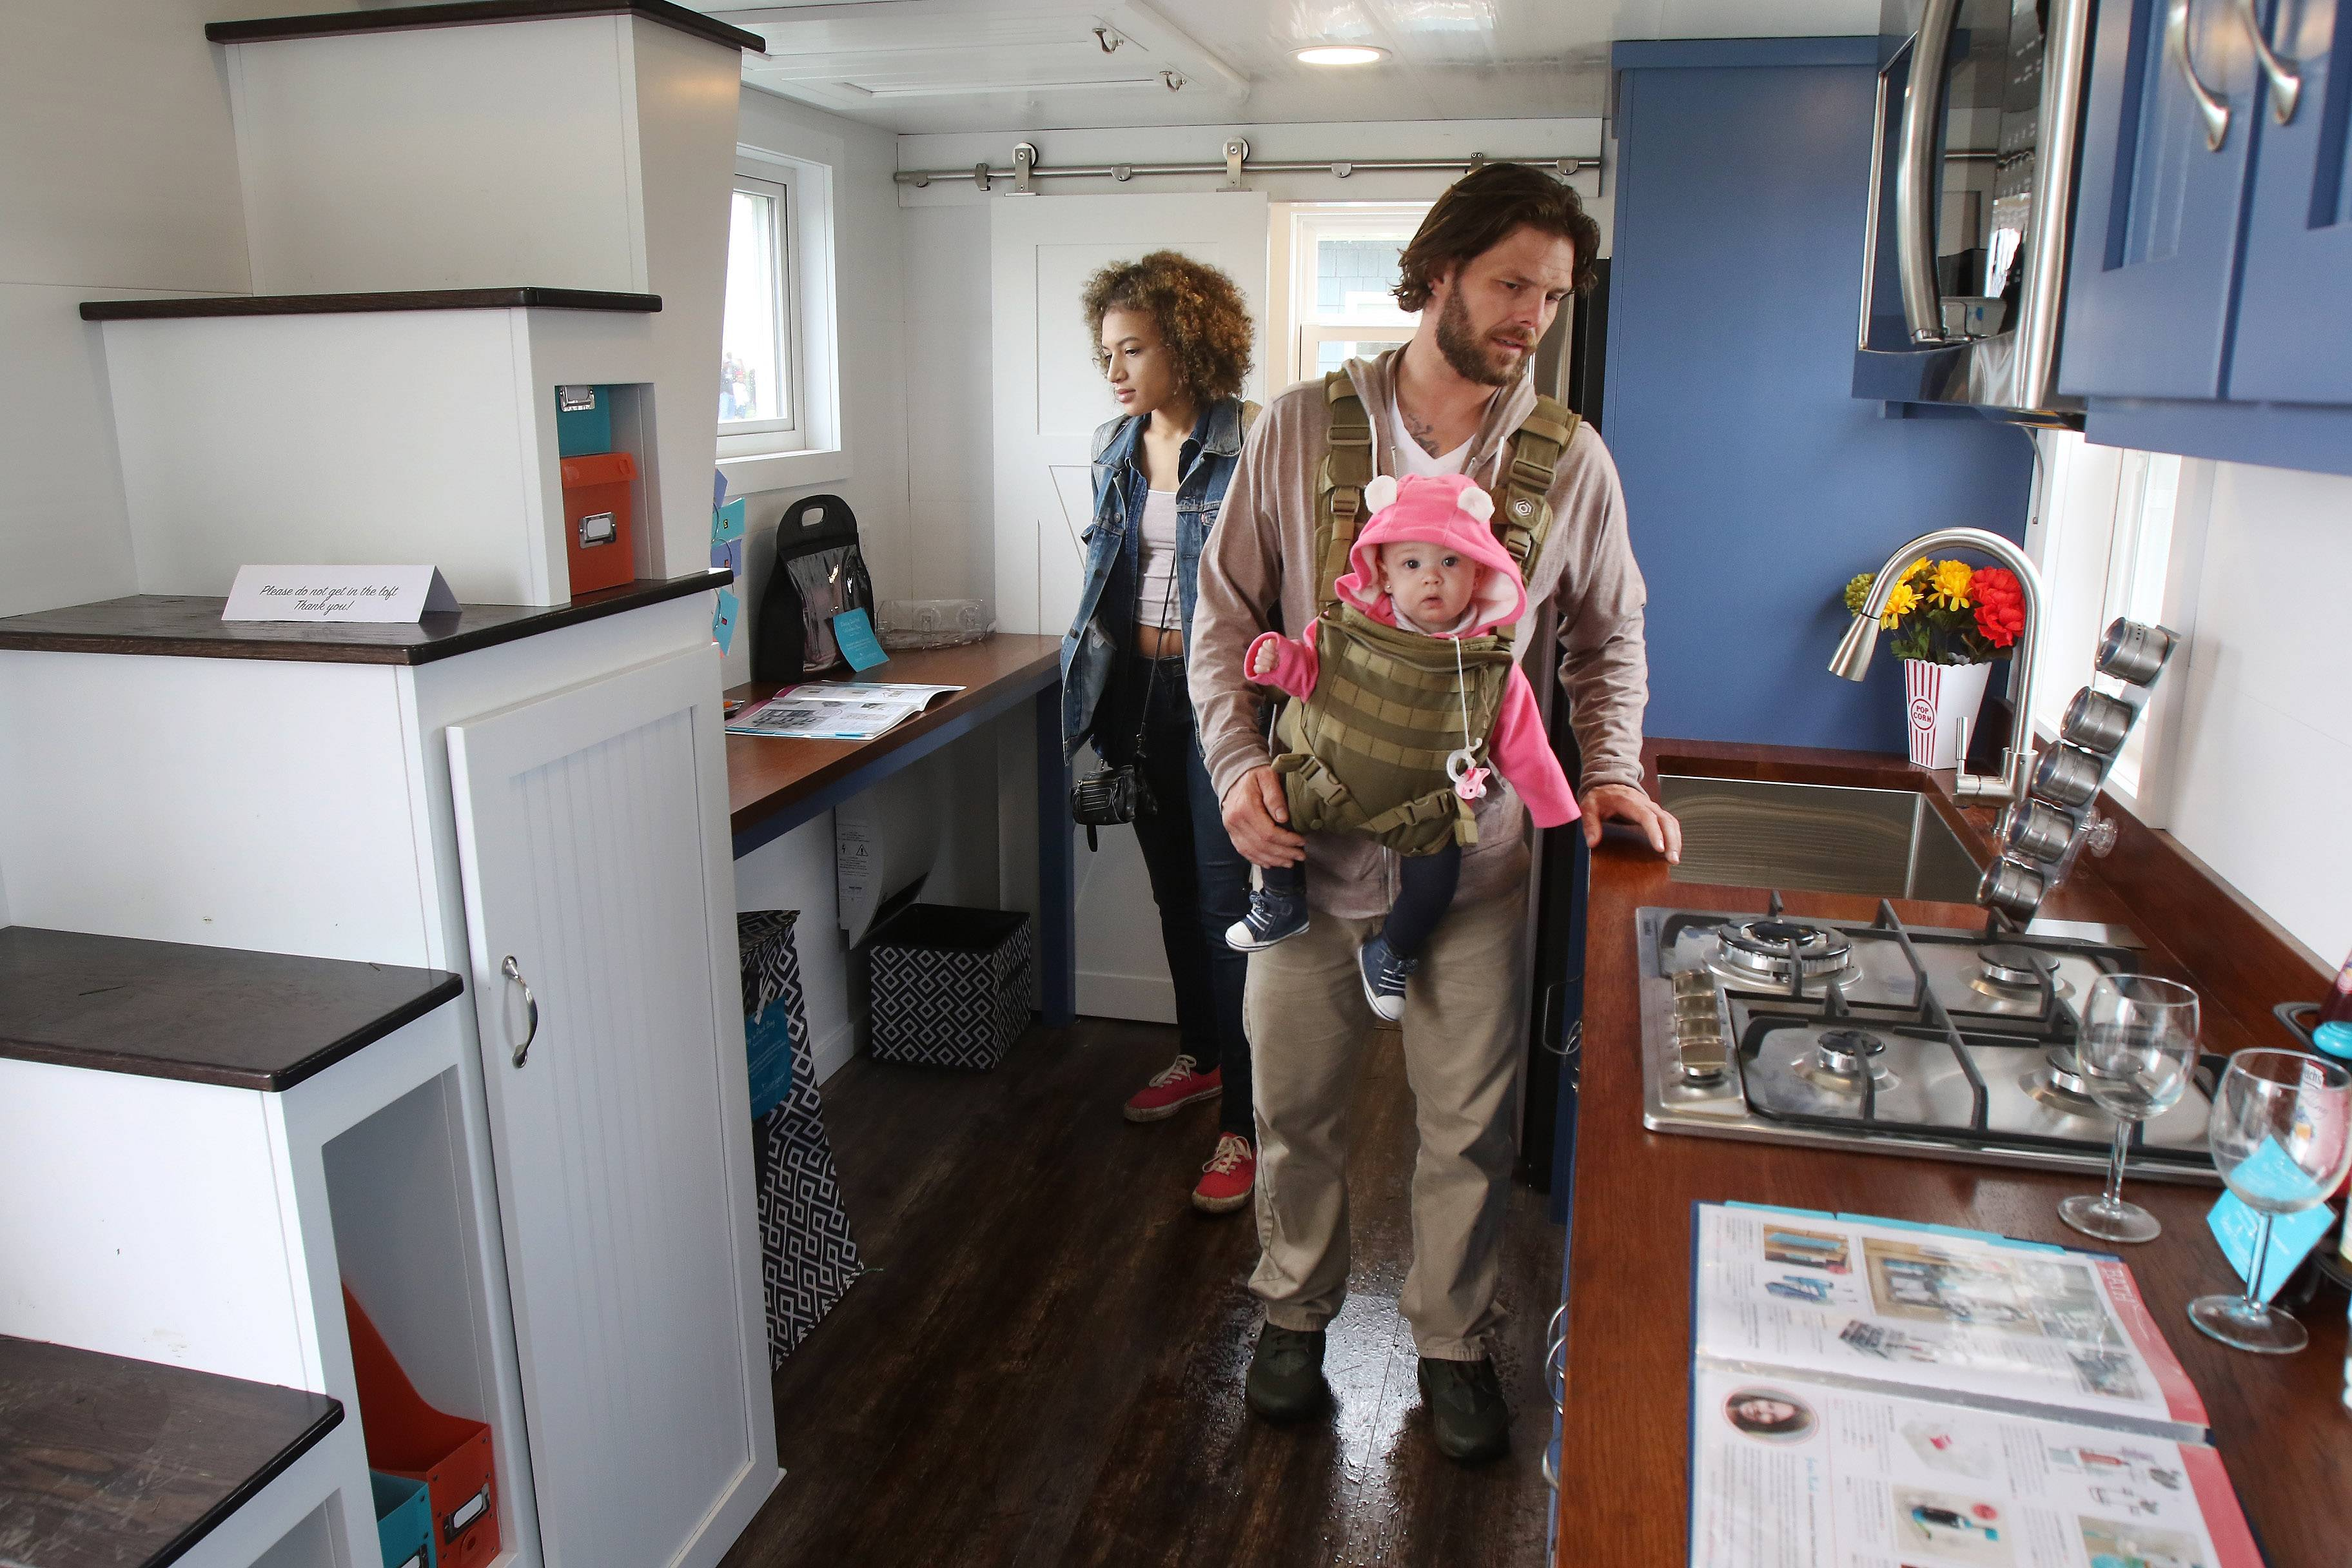 Chris Bergeron of Chicago carries his 6-month-old daughter, Rain Nova, as he looks at the inside of a model with his wife, Shy Jones, during the 2018 Chicago Tiny House Show on Sunday at Boomers Stadium in Schaumburg.